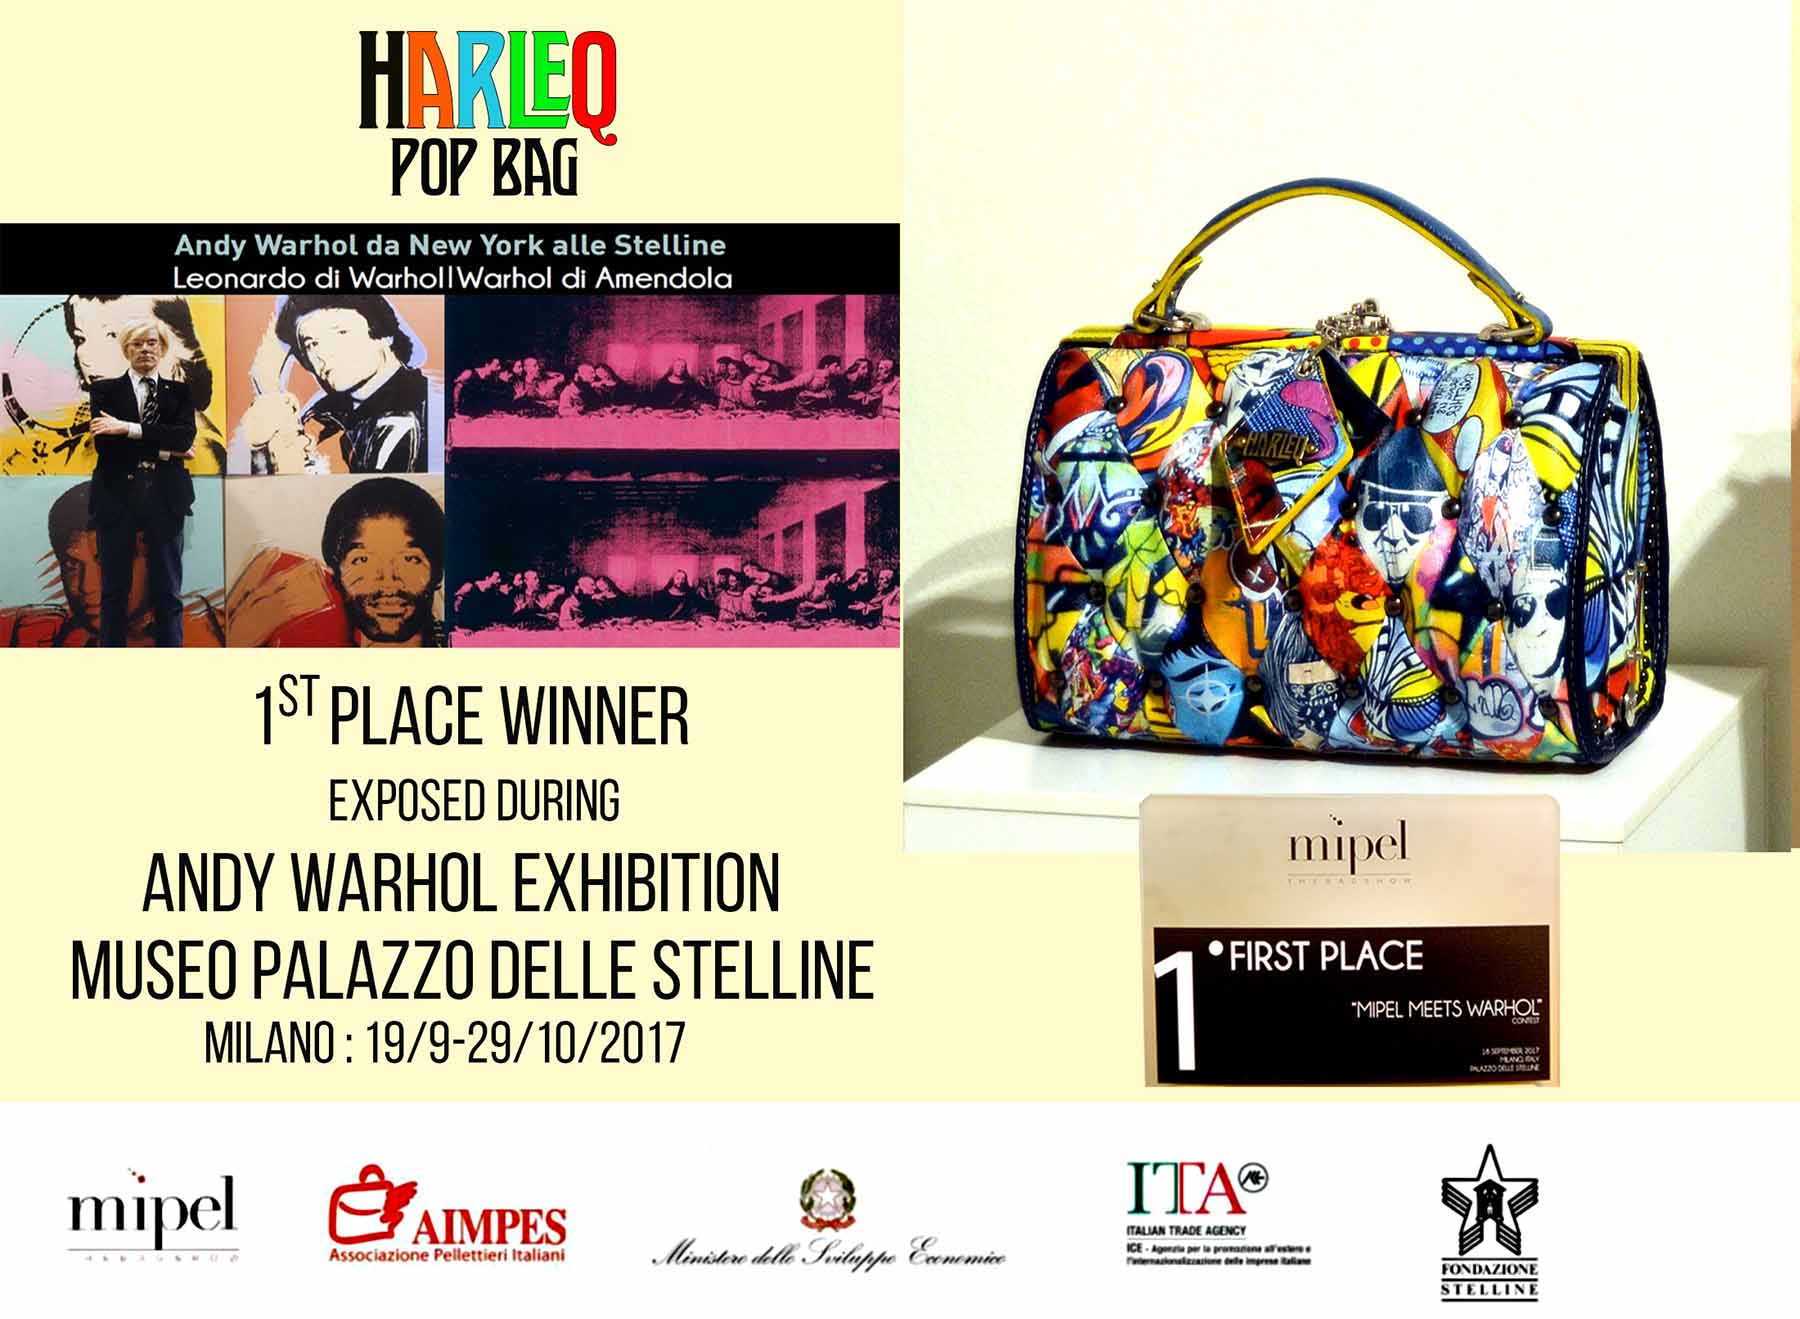 harleq-pop-bag-andy-warhol-exhibition